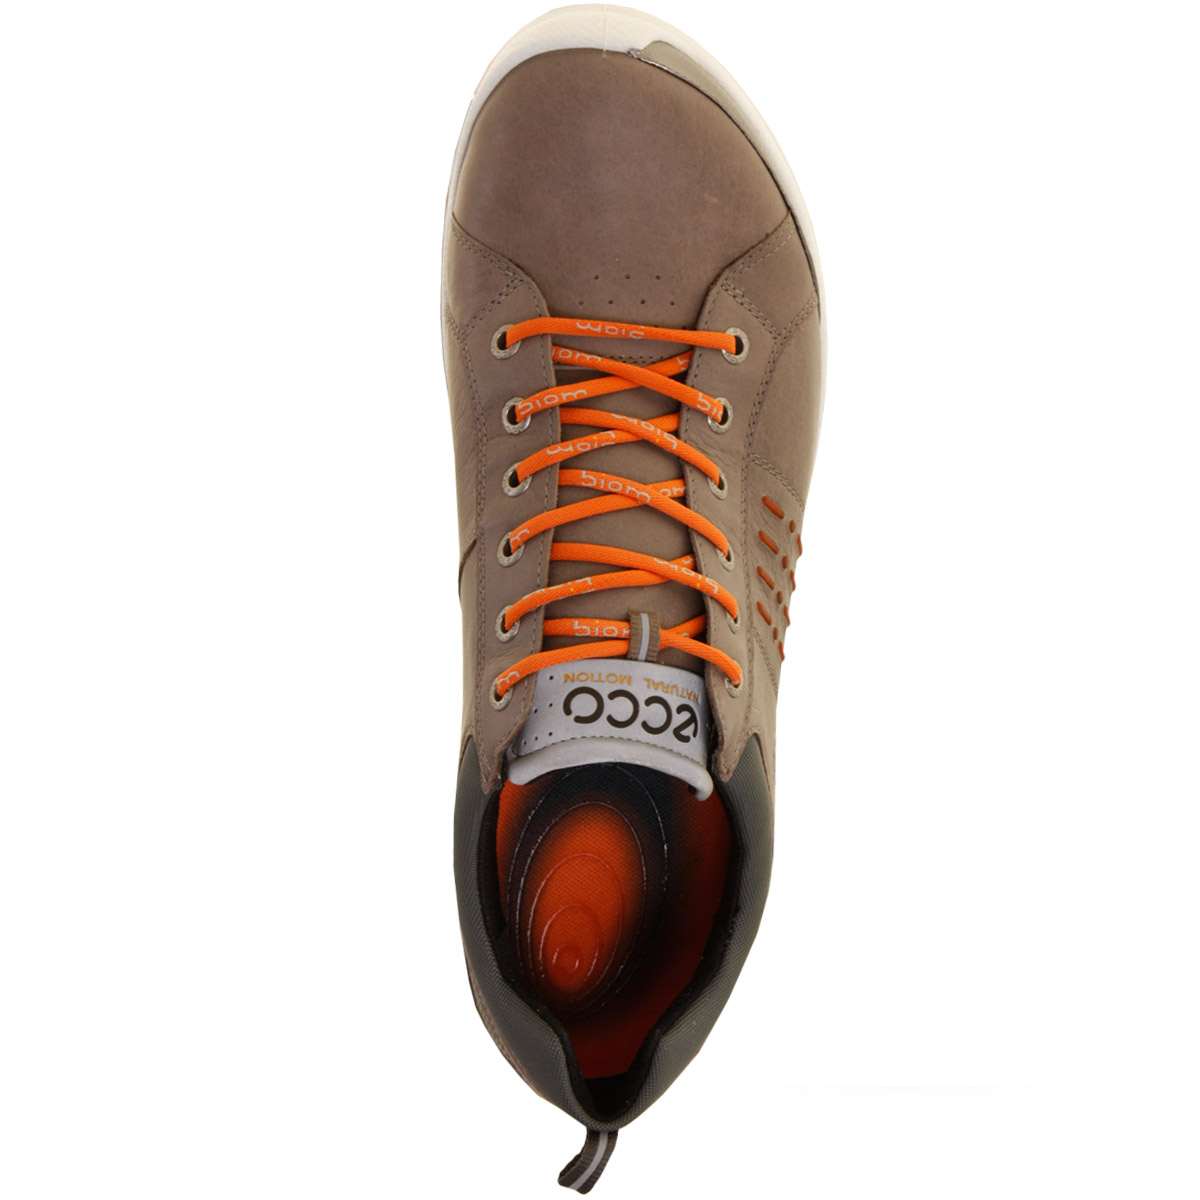 695d0f39686a Ecco Mens Biom Hybrid 2 Gore Tex Waterproof Leather Golf Shoes